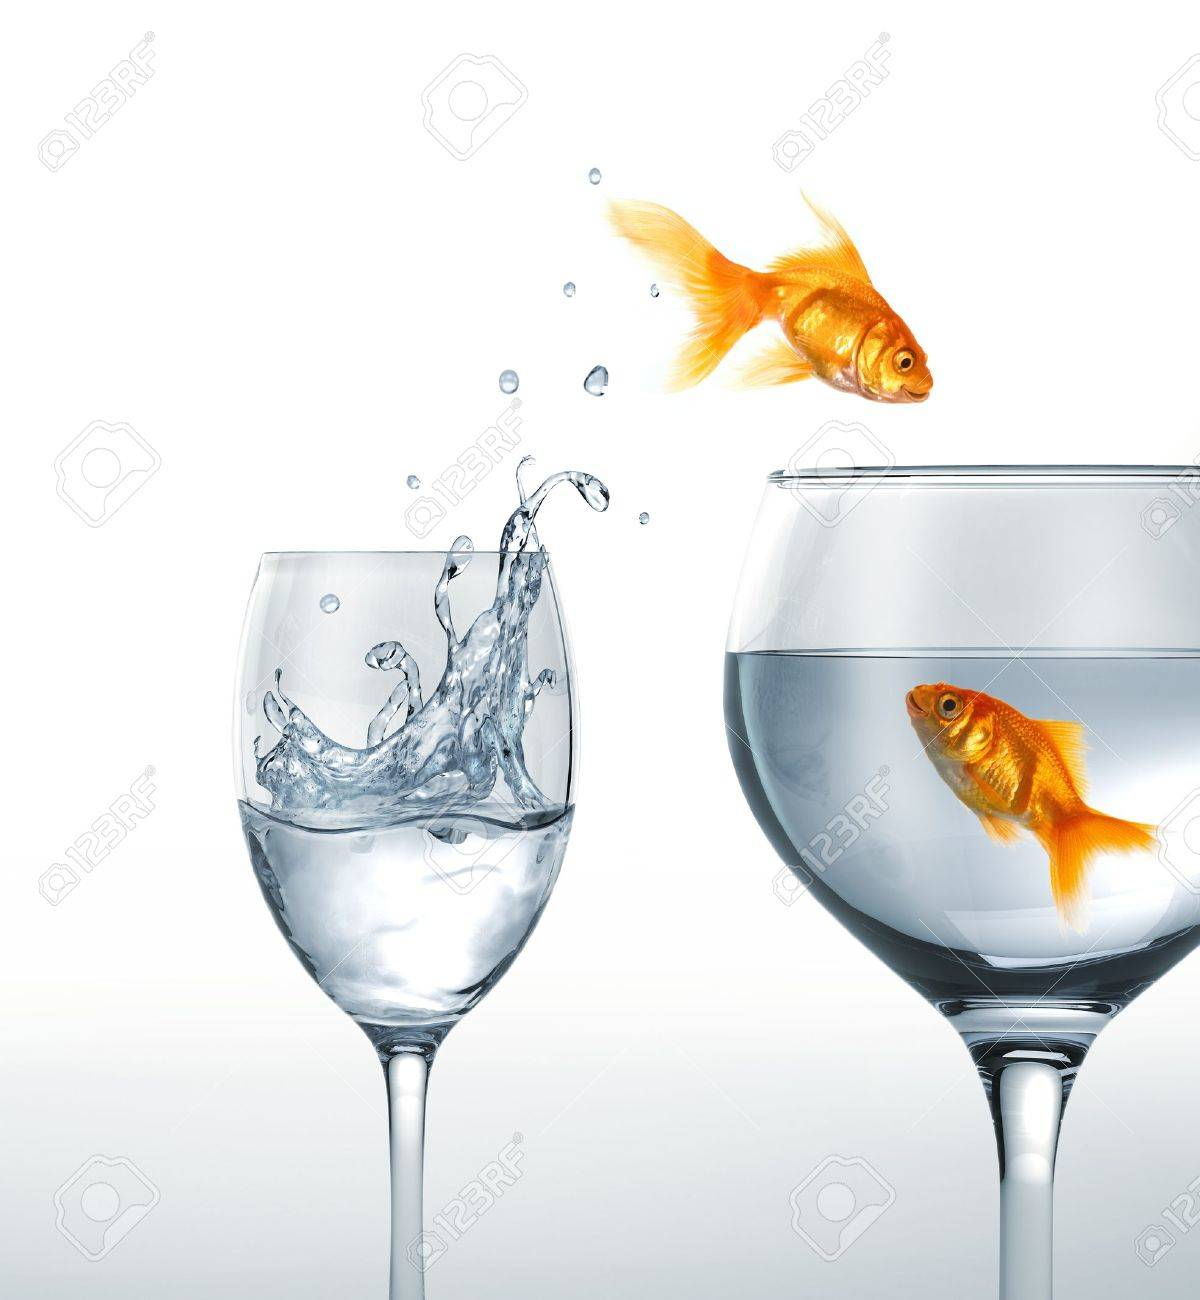 Gold fish smiling jumping from a glass of water, to a larger one, where another fish is waiting. On white background. Stock Photo - 19893752